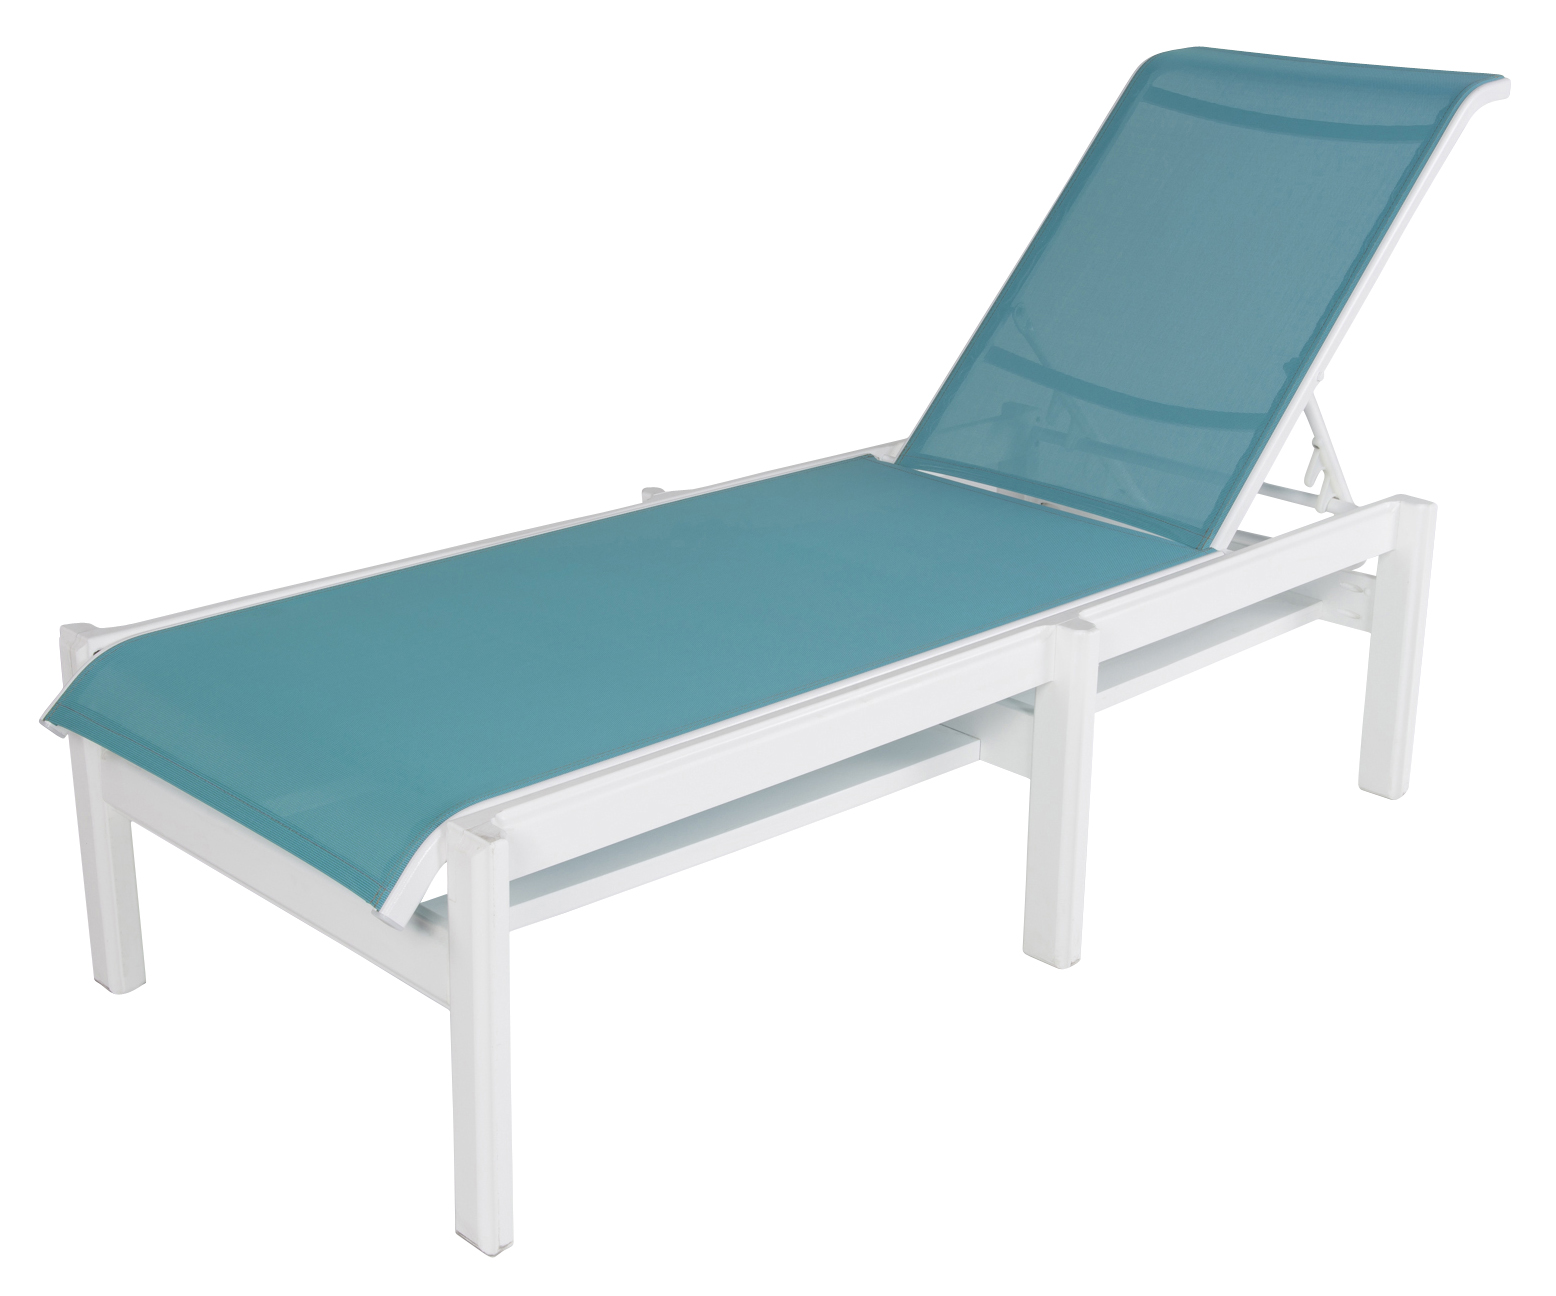 SLING CHAISE WITH NO ARM W6810 GRADE B $369.00 GRADE C $379.00 GRADE D  $389.00 GRADE Part 23